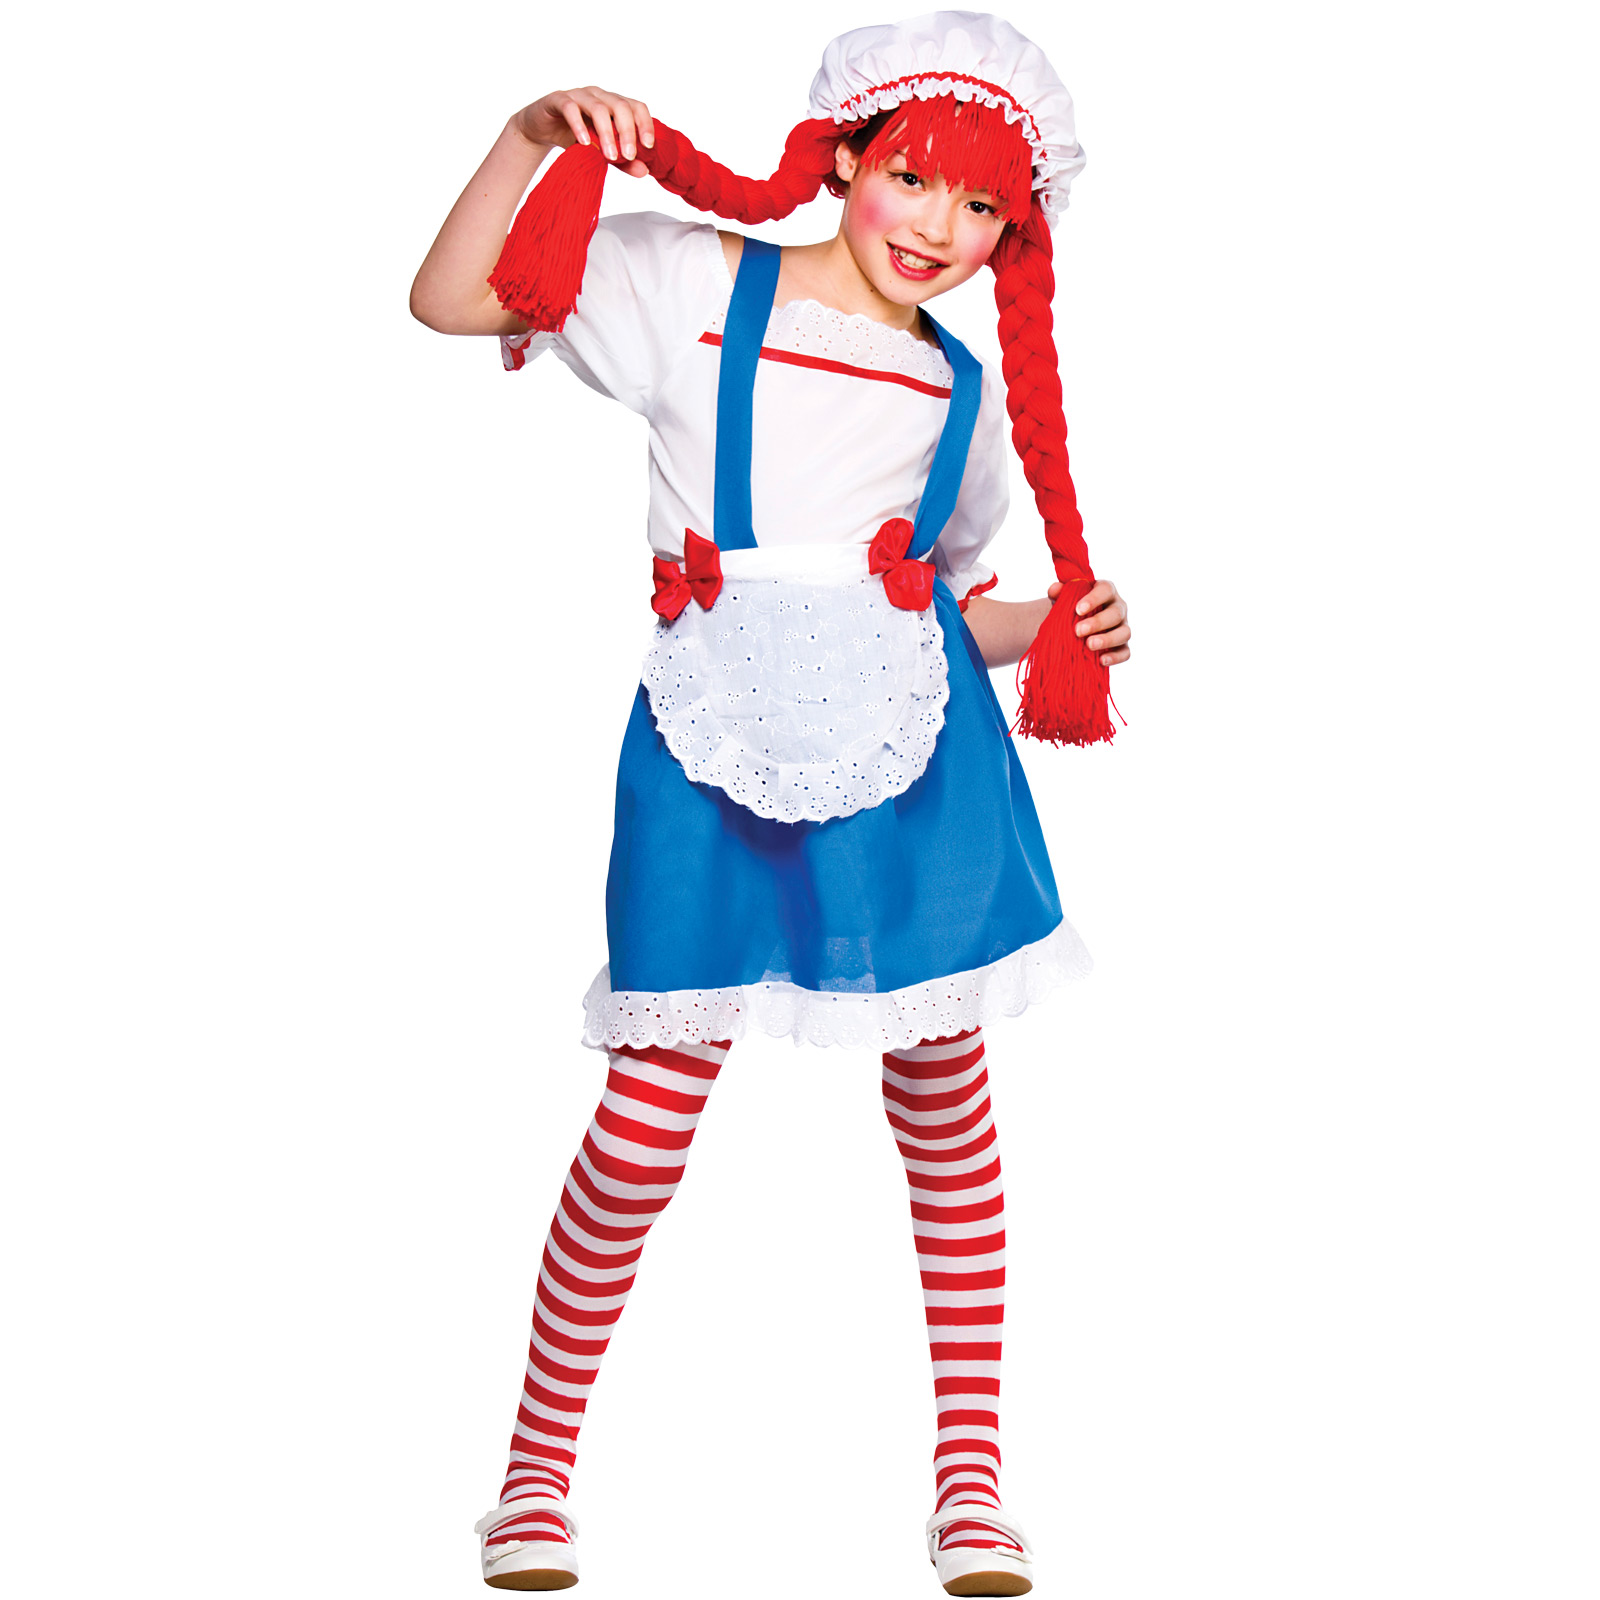 Girls Little Rag Doll Costume Fancy Dress Up Party Halloween Outfit Kid Child | eBay